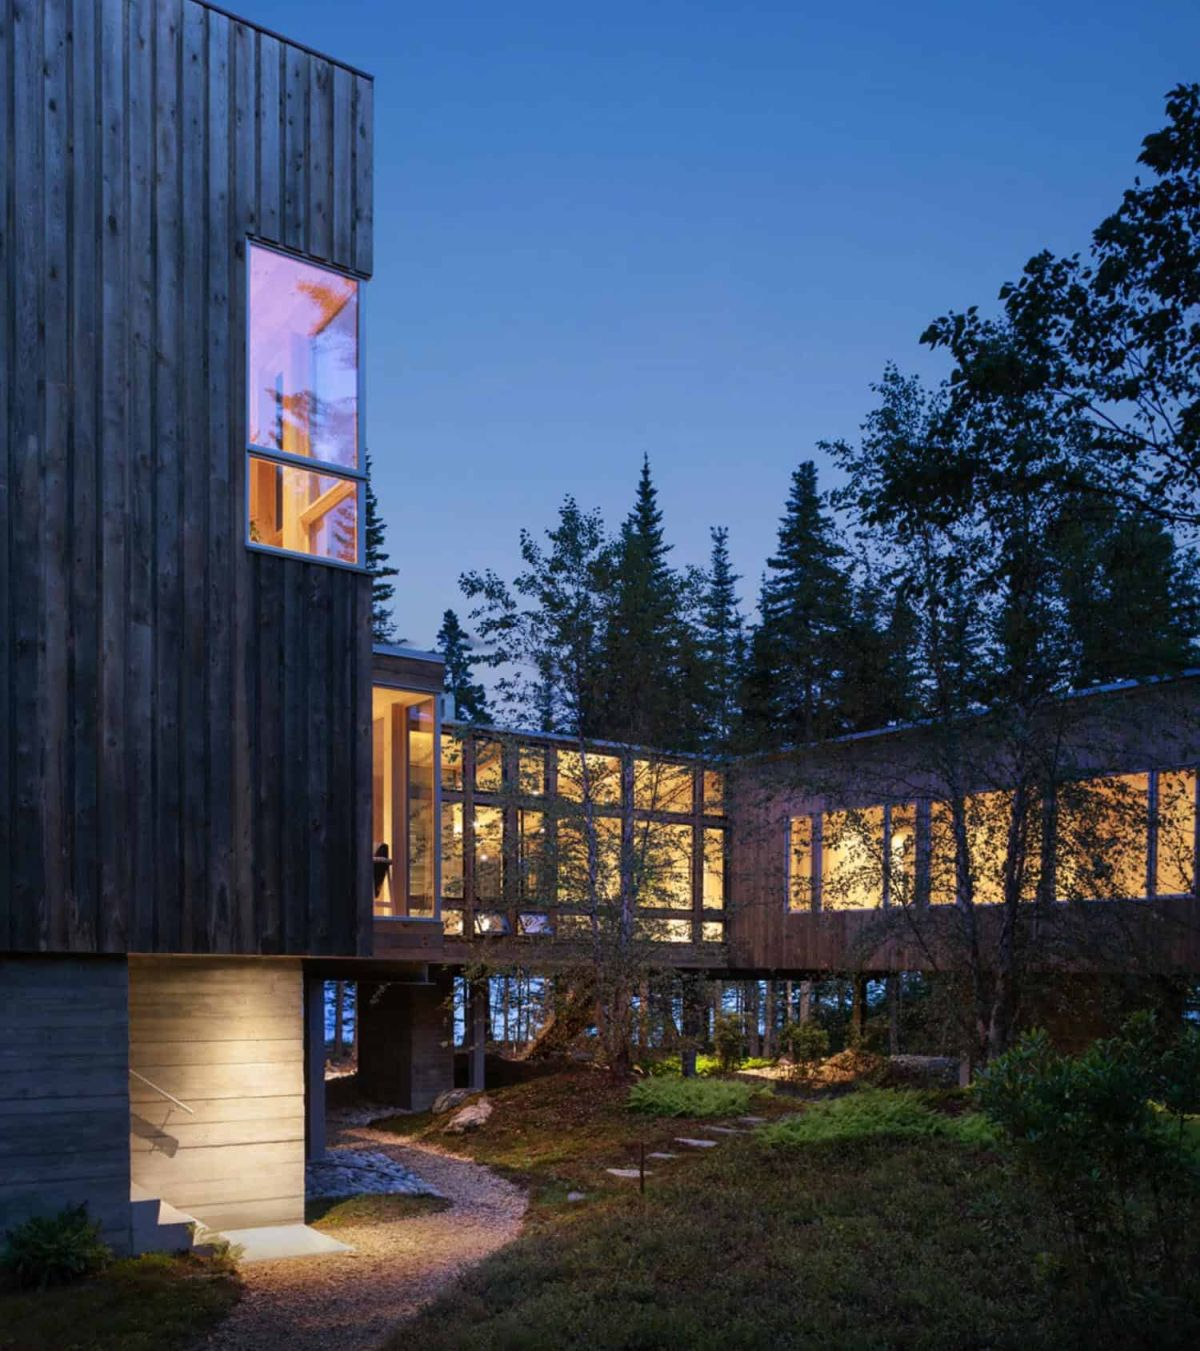 The exterior of the cabin is clad in wood which has a beautiful weathered patina